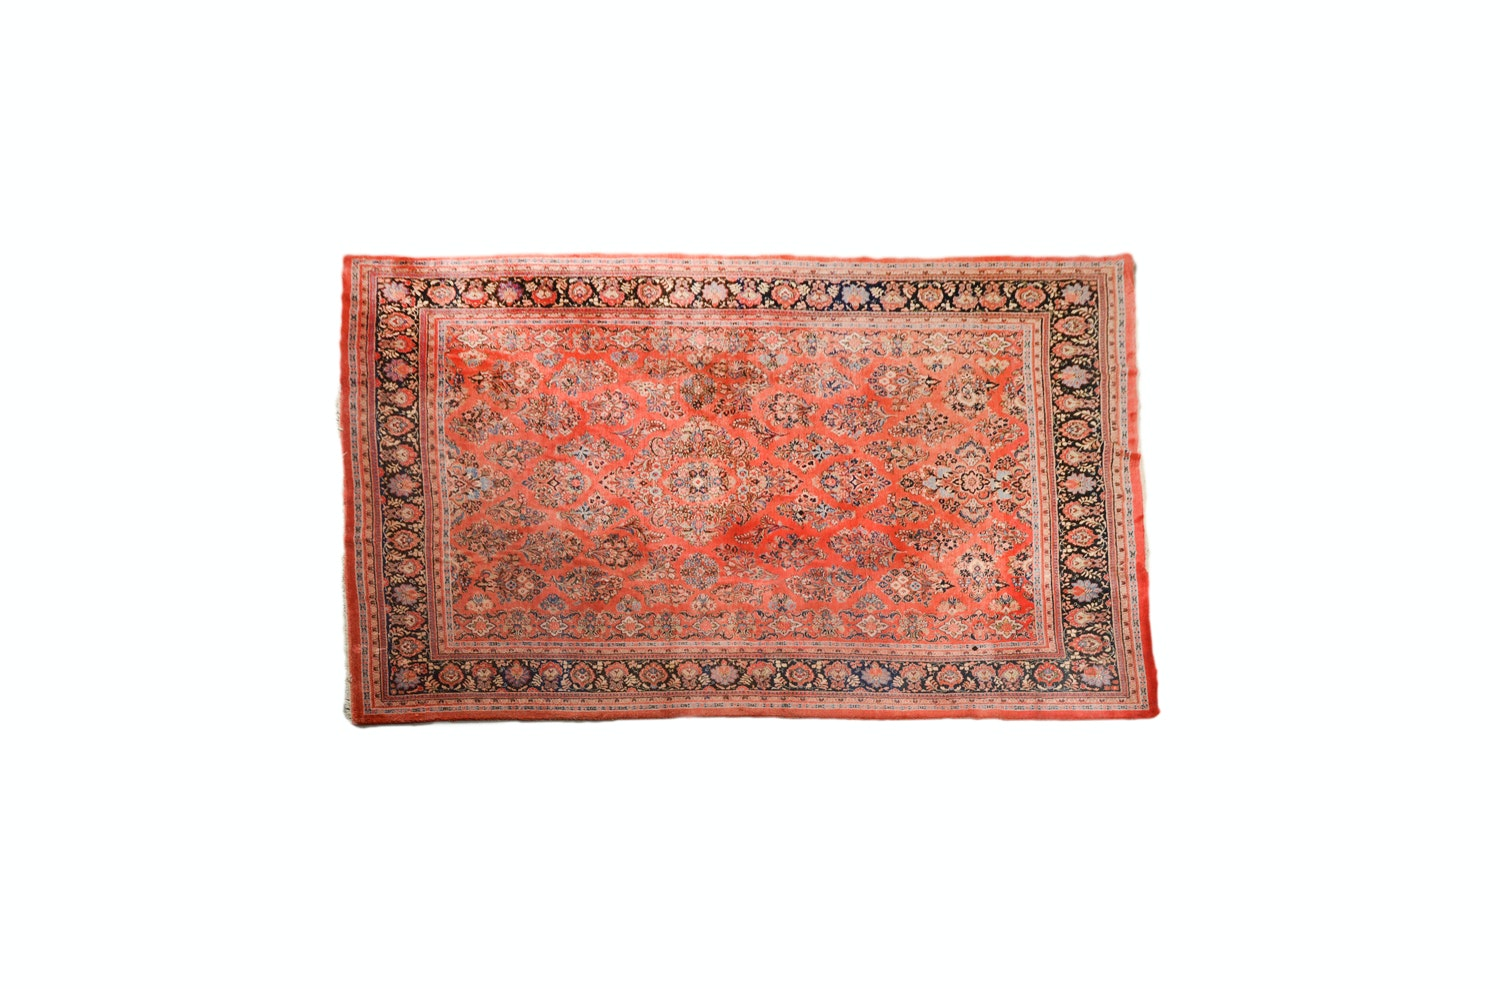 Vintage Hand-Knotted Persian Sarouk Wool Room Size Rug